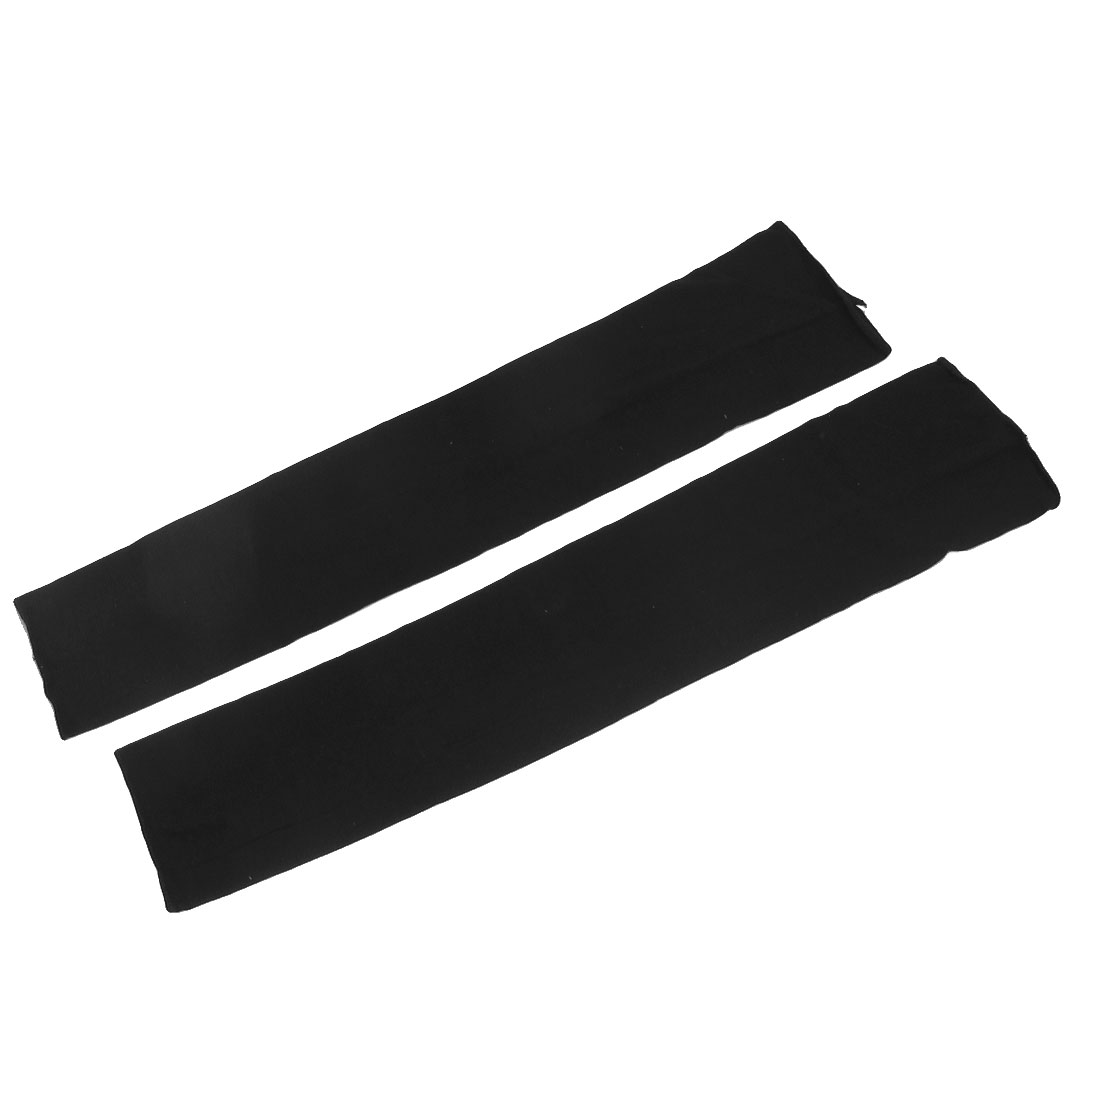 Unisex Stretchy Outdoor Activity Skin Cover Sun Protection Arm Sleeves Black